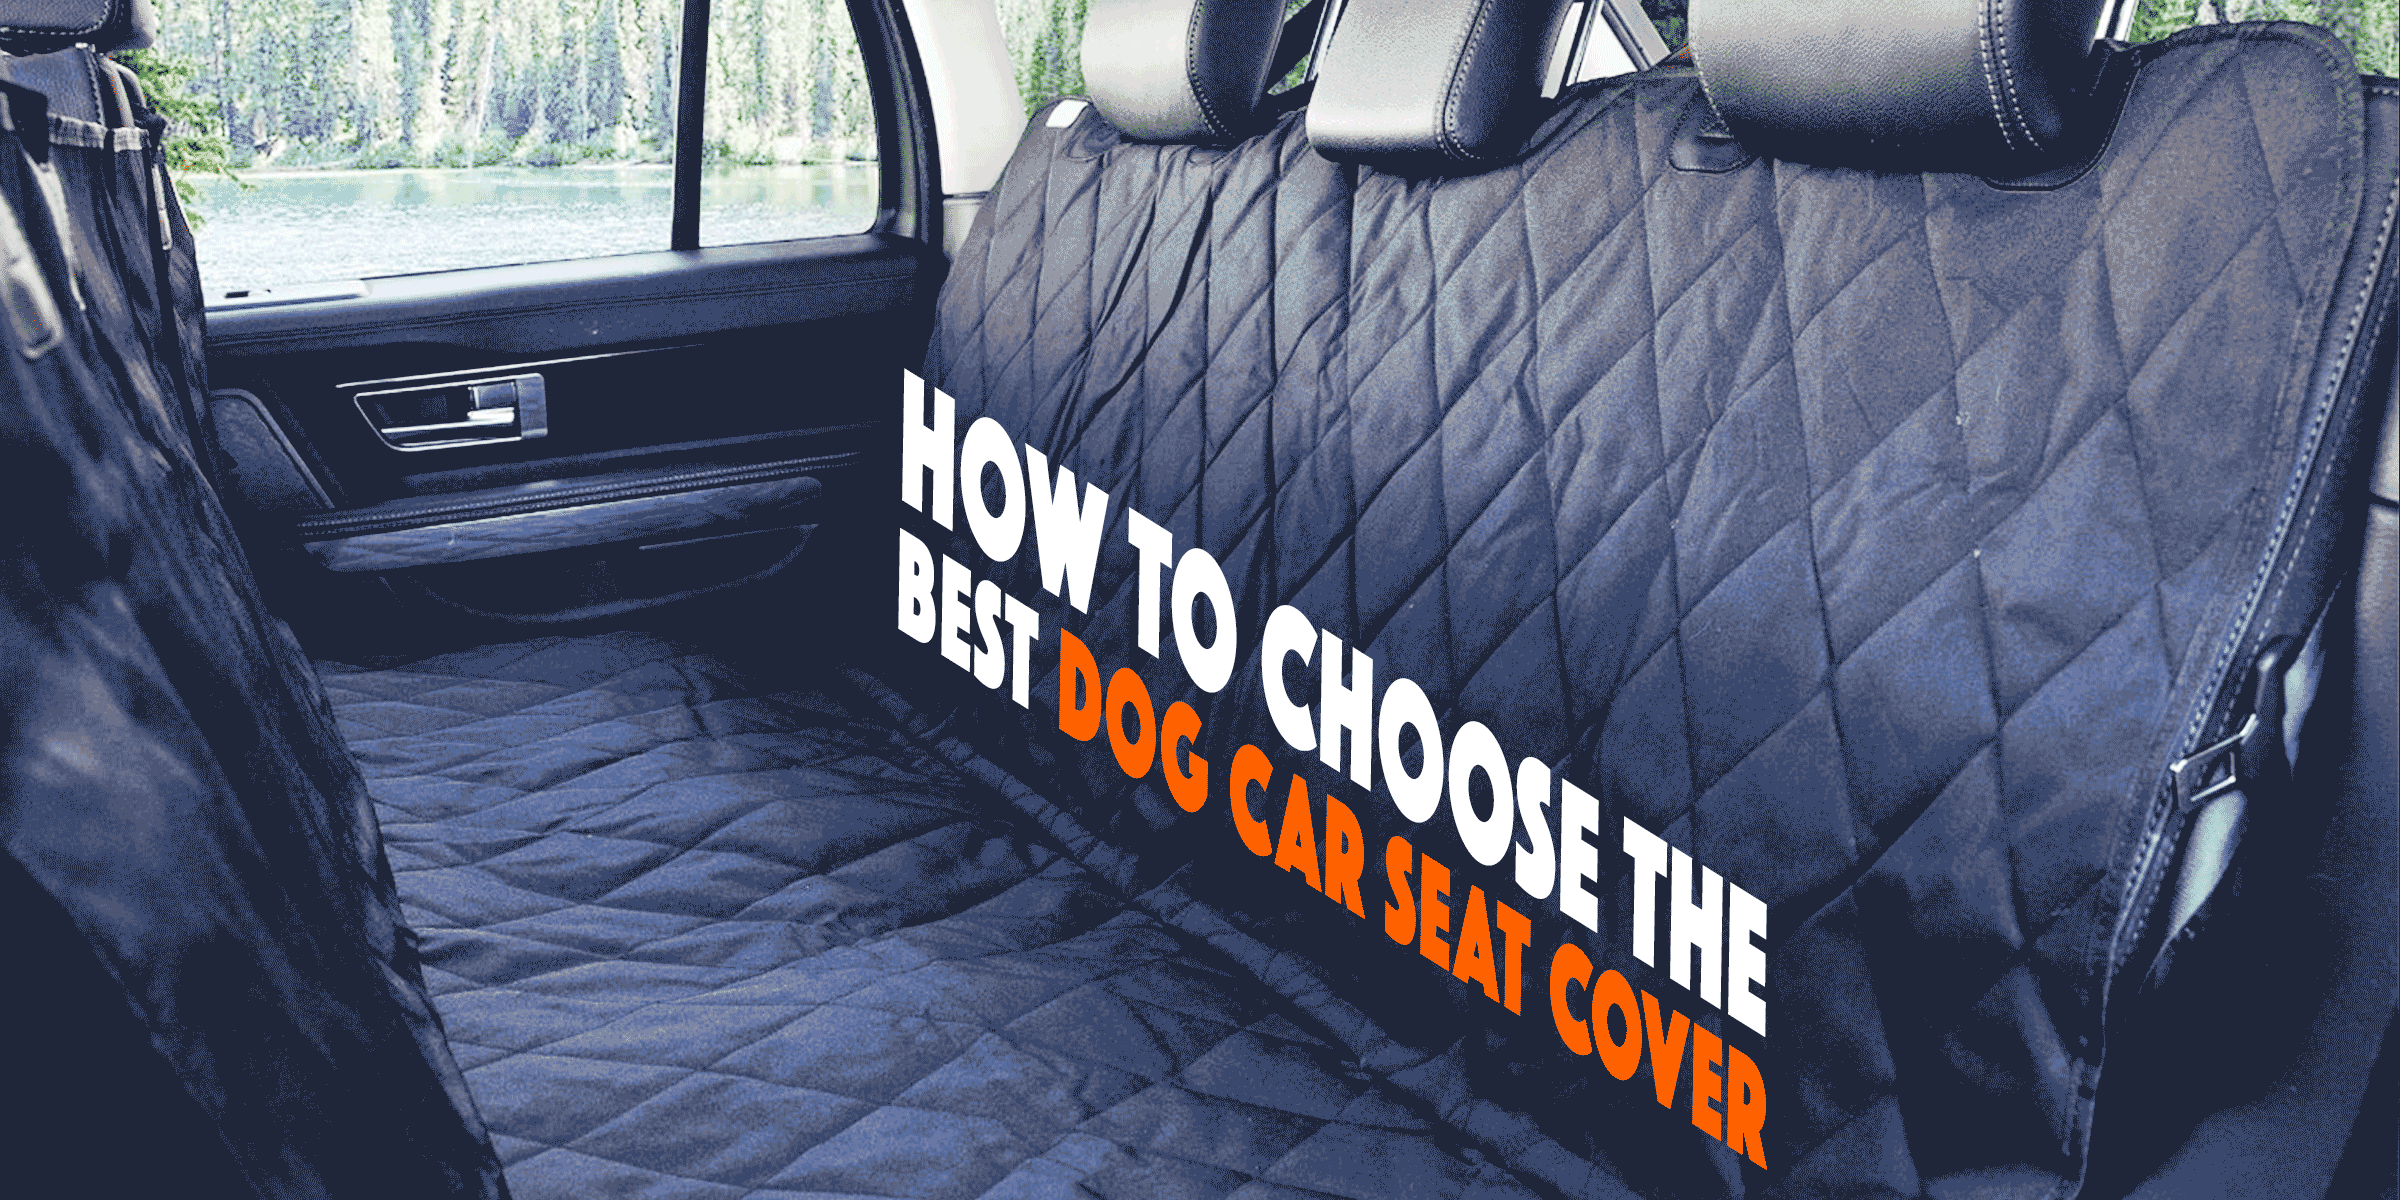 3 best dog car seat covers for suvs cars and trucks in 2018. Black Bedroom Furniture Sets. Home Design Ideas